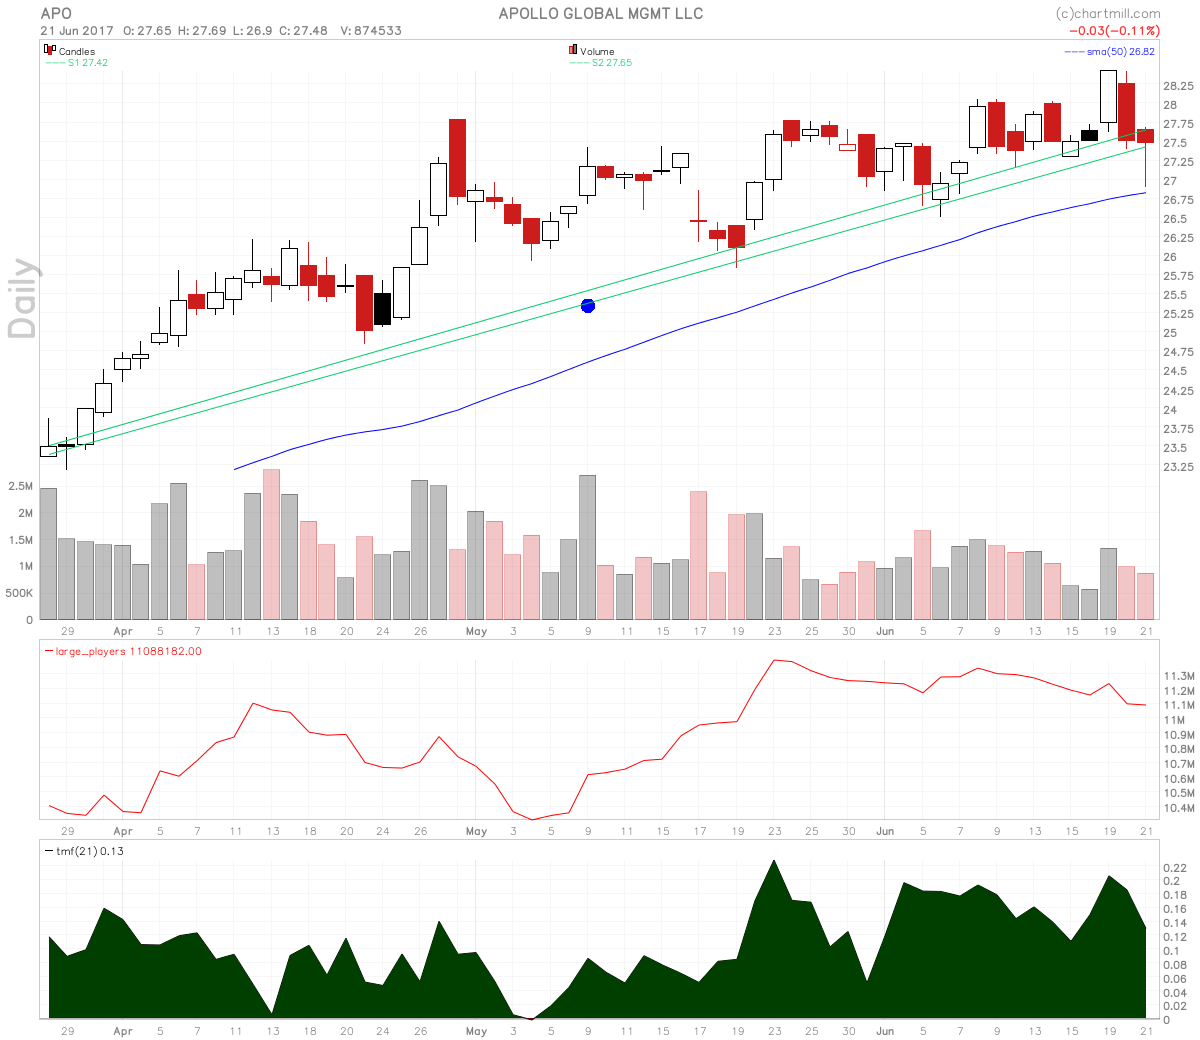 Apollo Global Management Hammer and Momentum Squeeze Setup